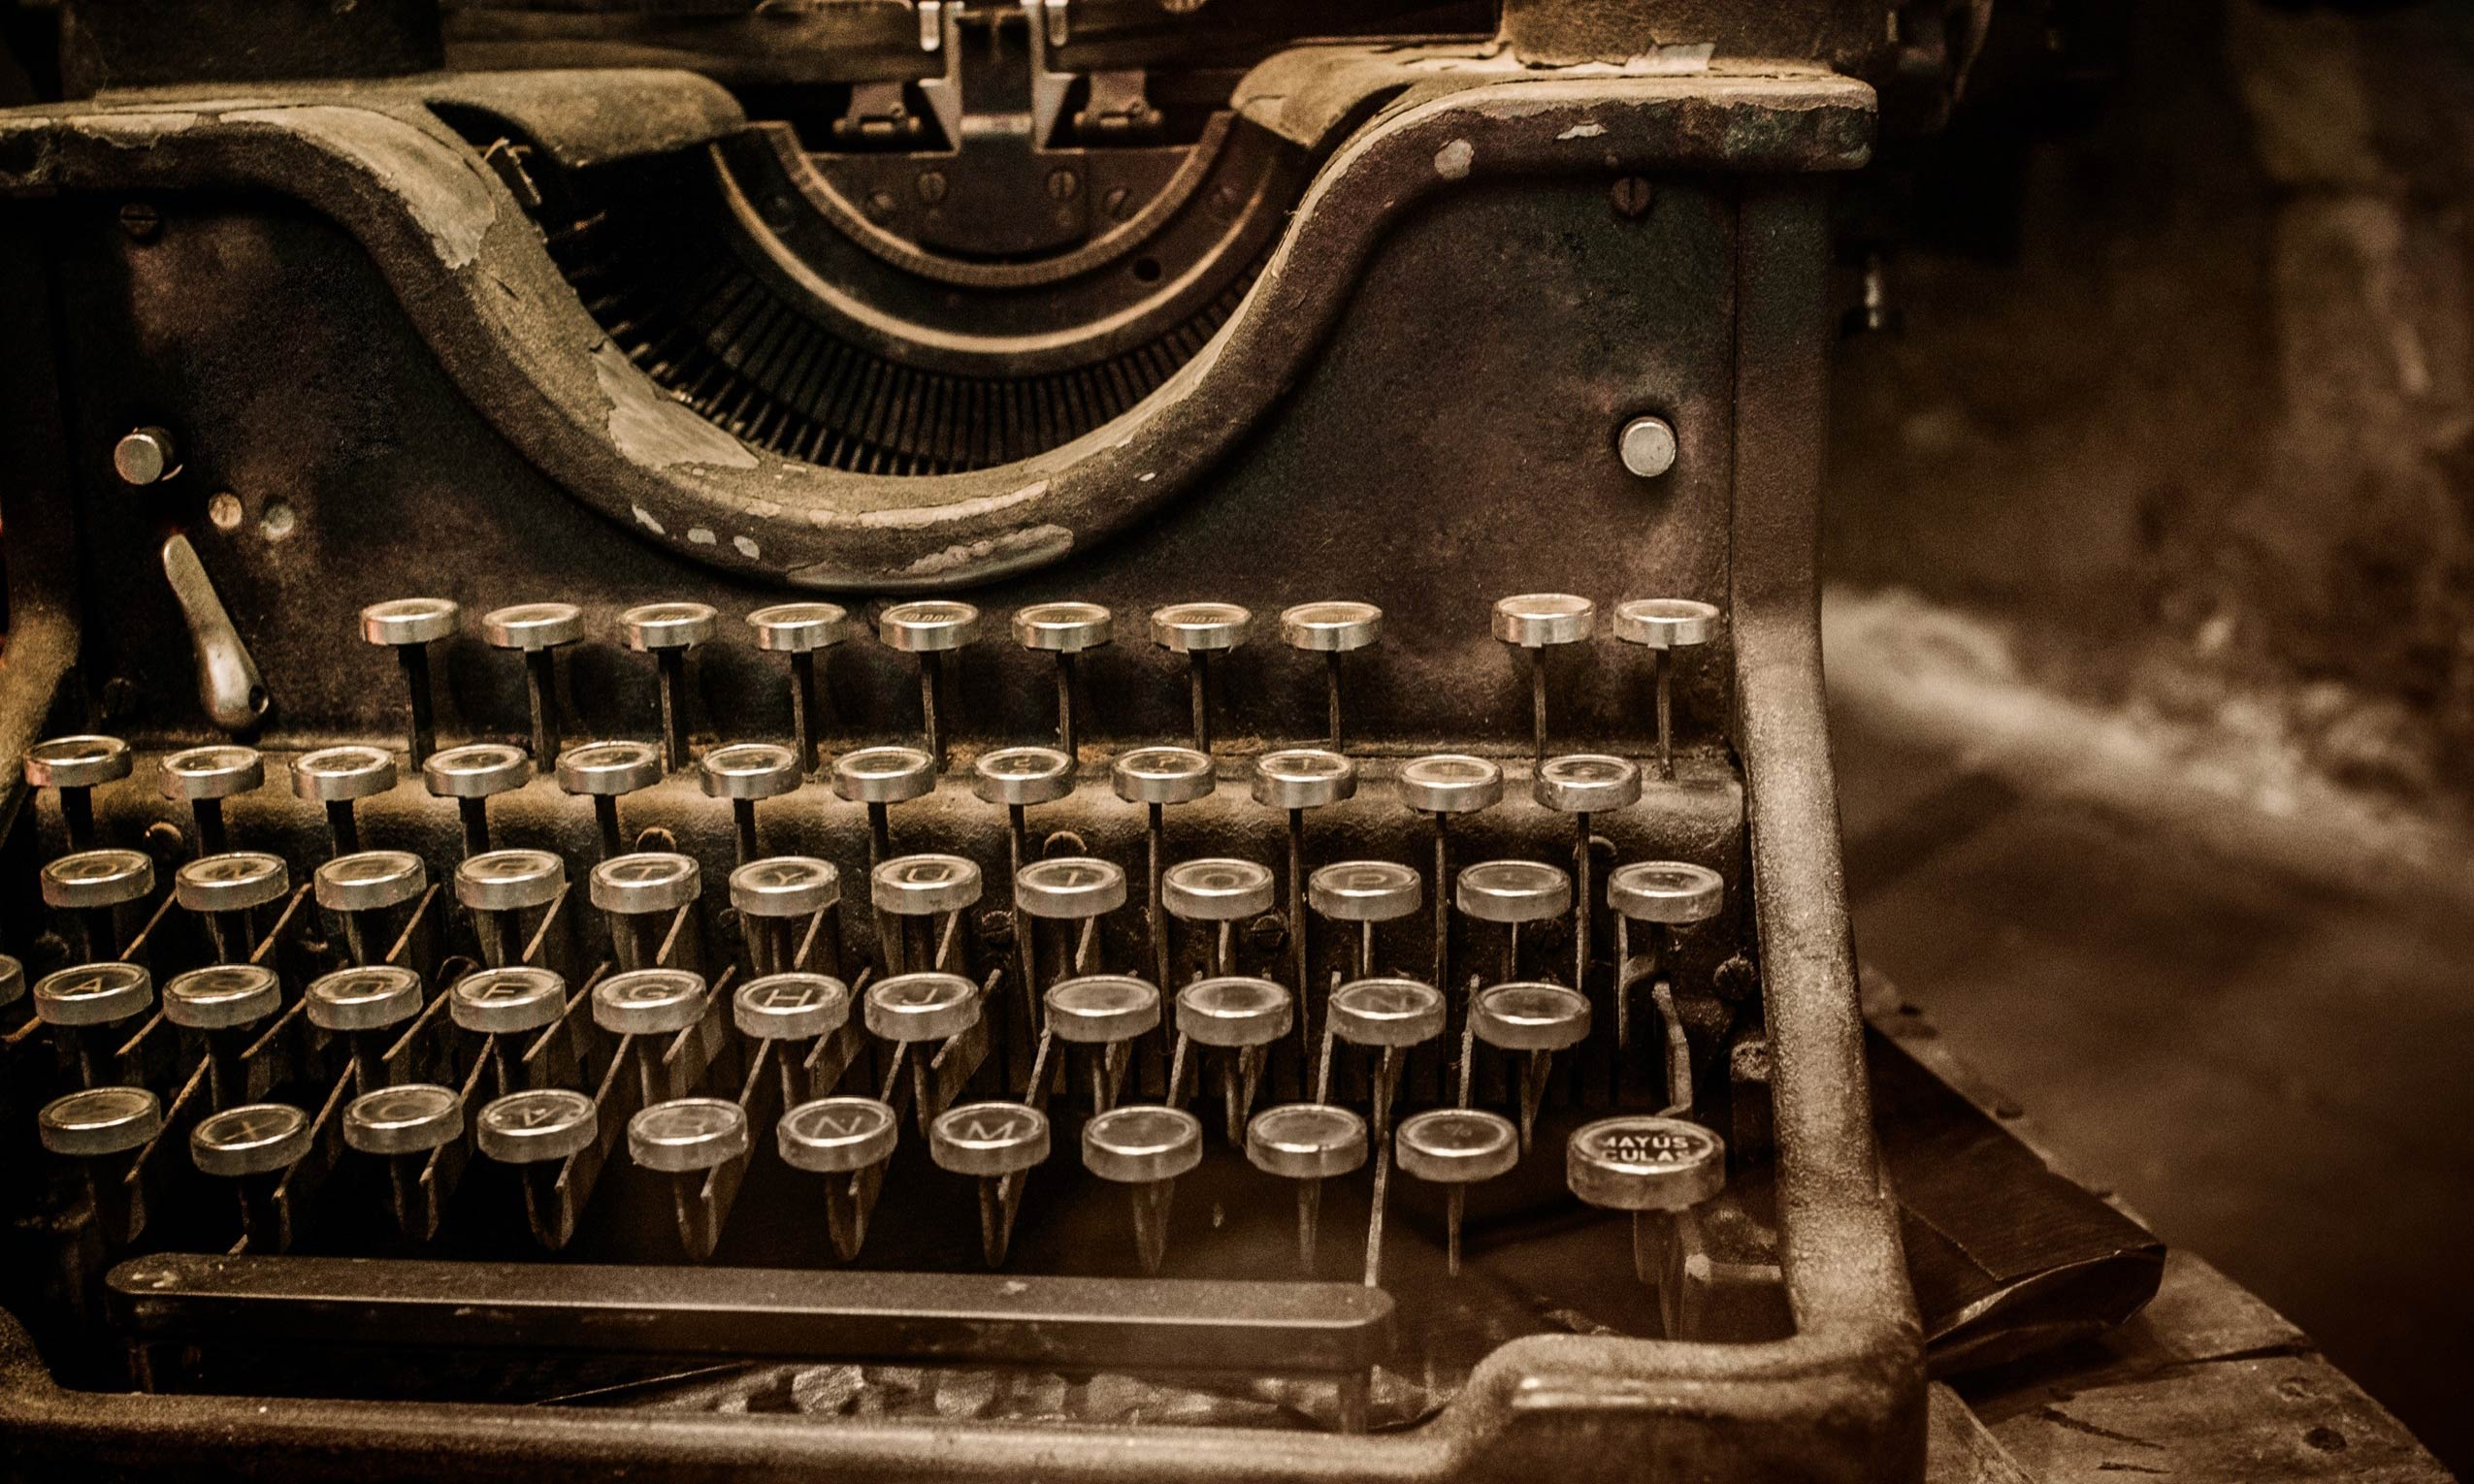 Crave the clack-clack of a typewriter? There's finally an app for that, thanks to Tom Hanks.